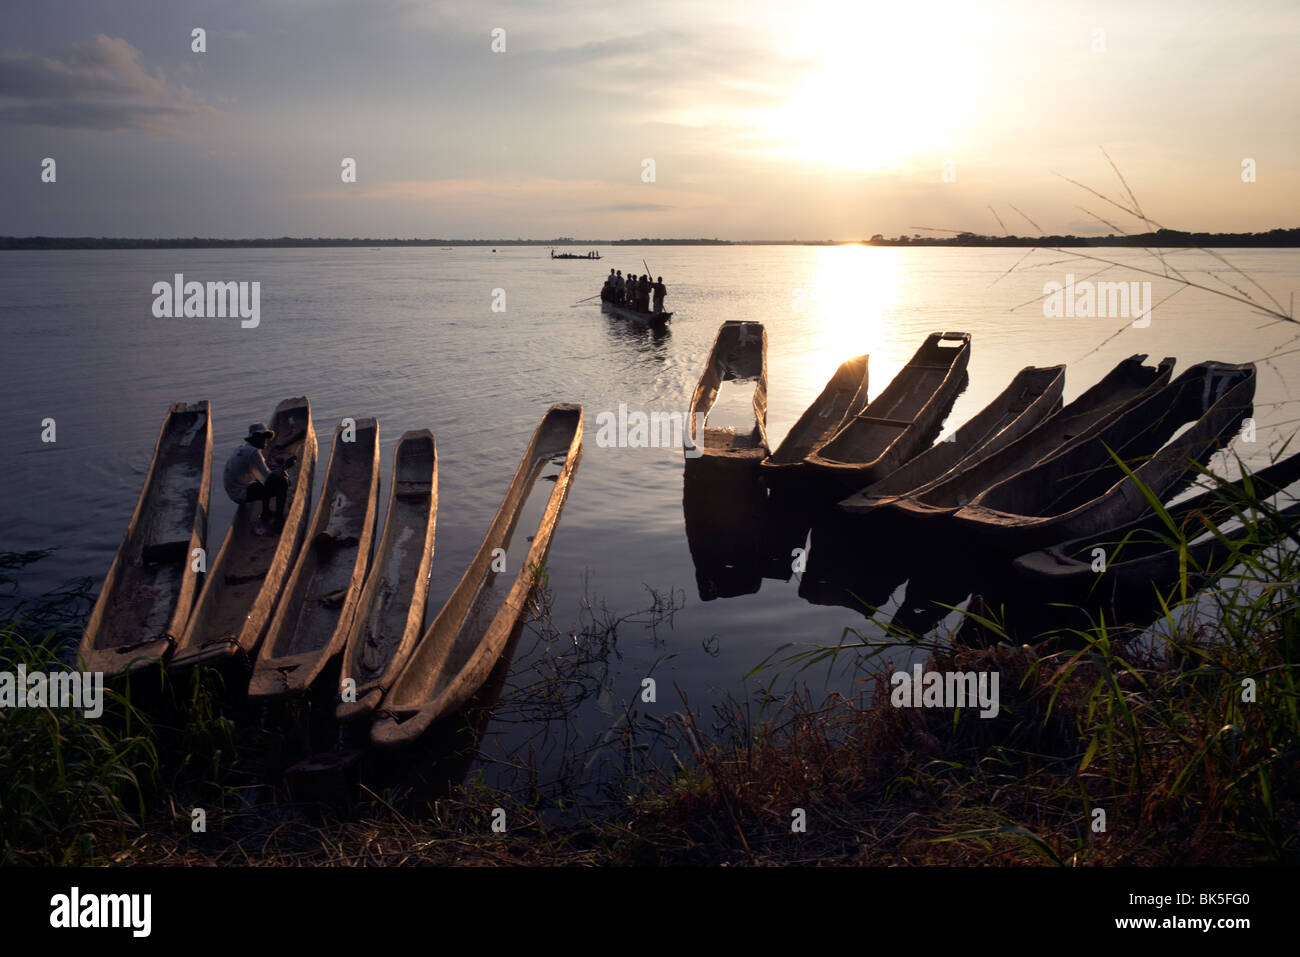 Dugout canoes (pirogues) on the Congo River, Yangambi, Democratic Republic of Congo, Africa - Stock Image